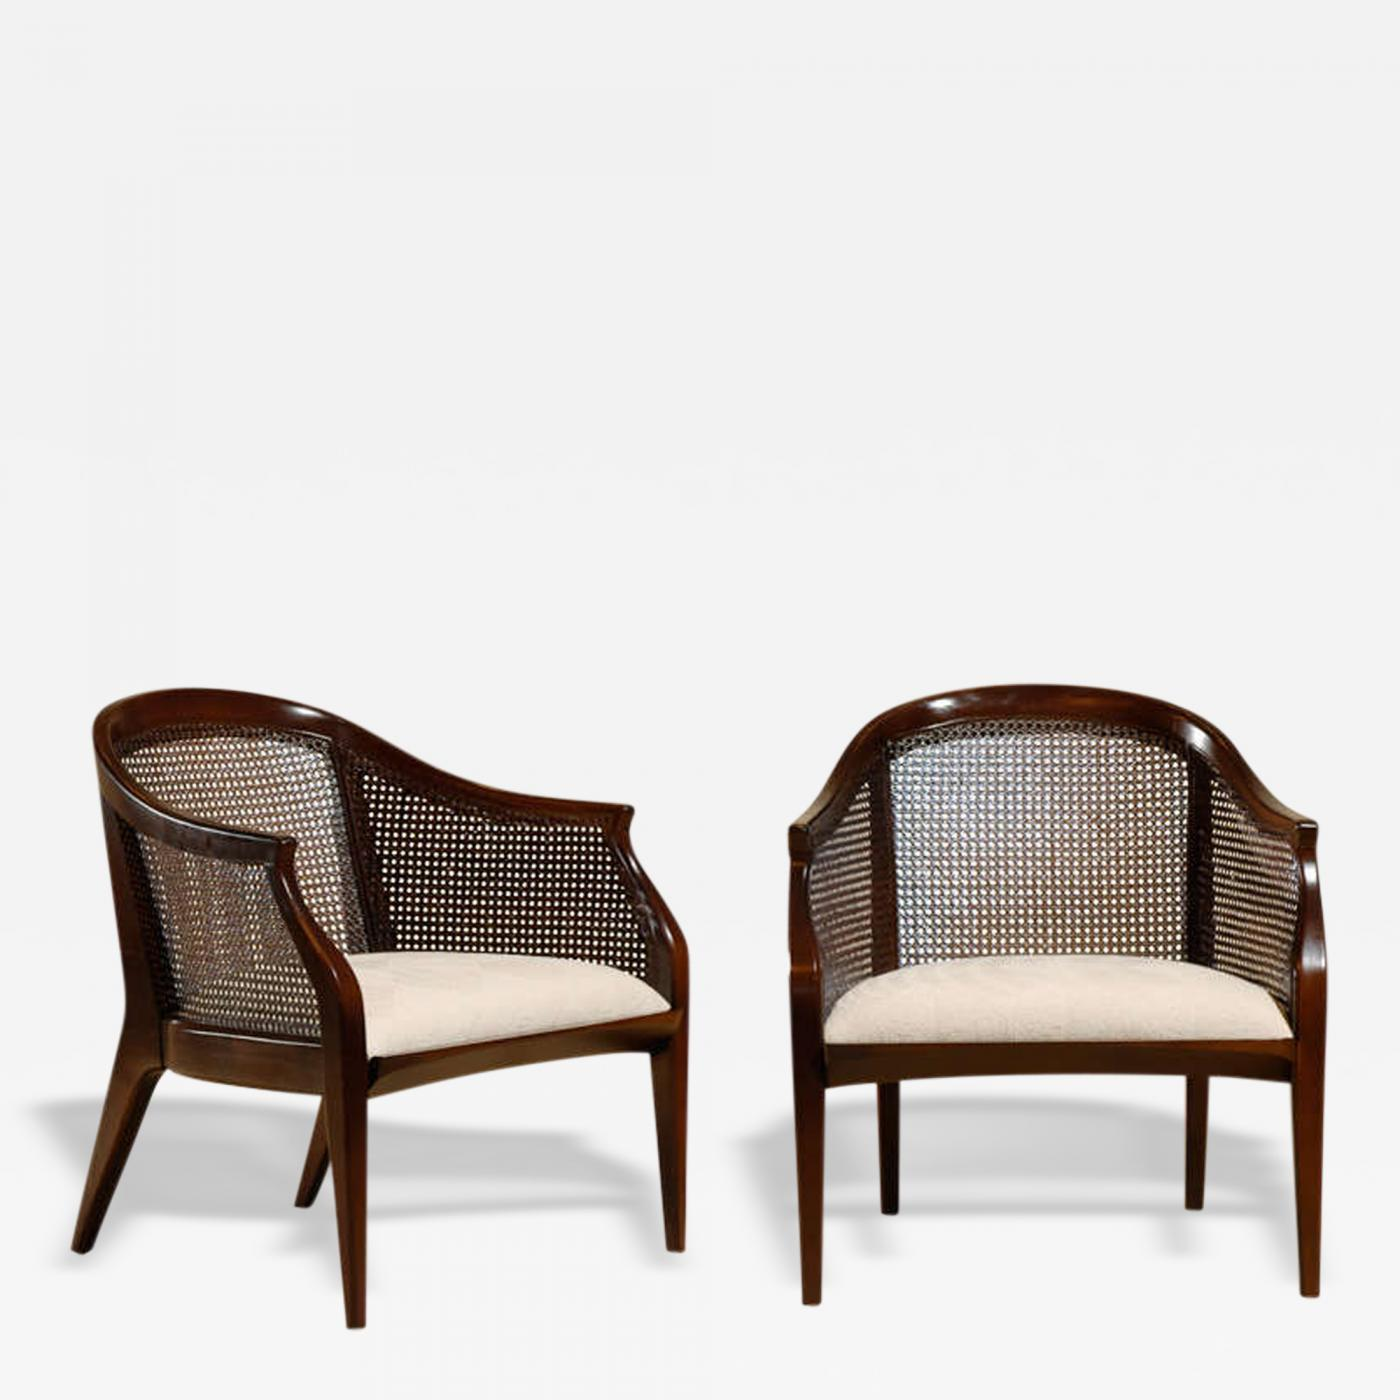 Tomlinson Furniture Co Pair of Tomlinson Cane Back Lounge Club